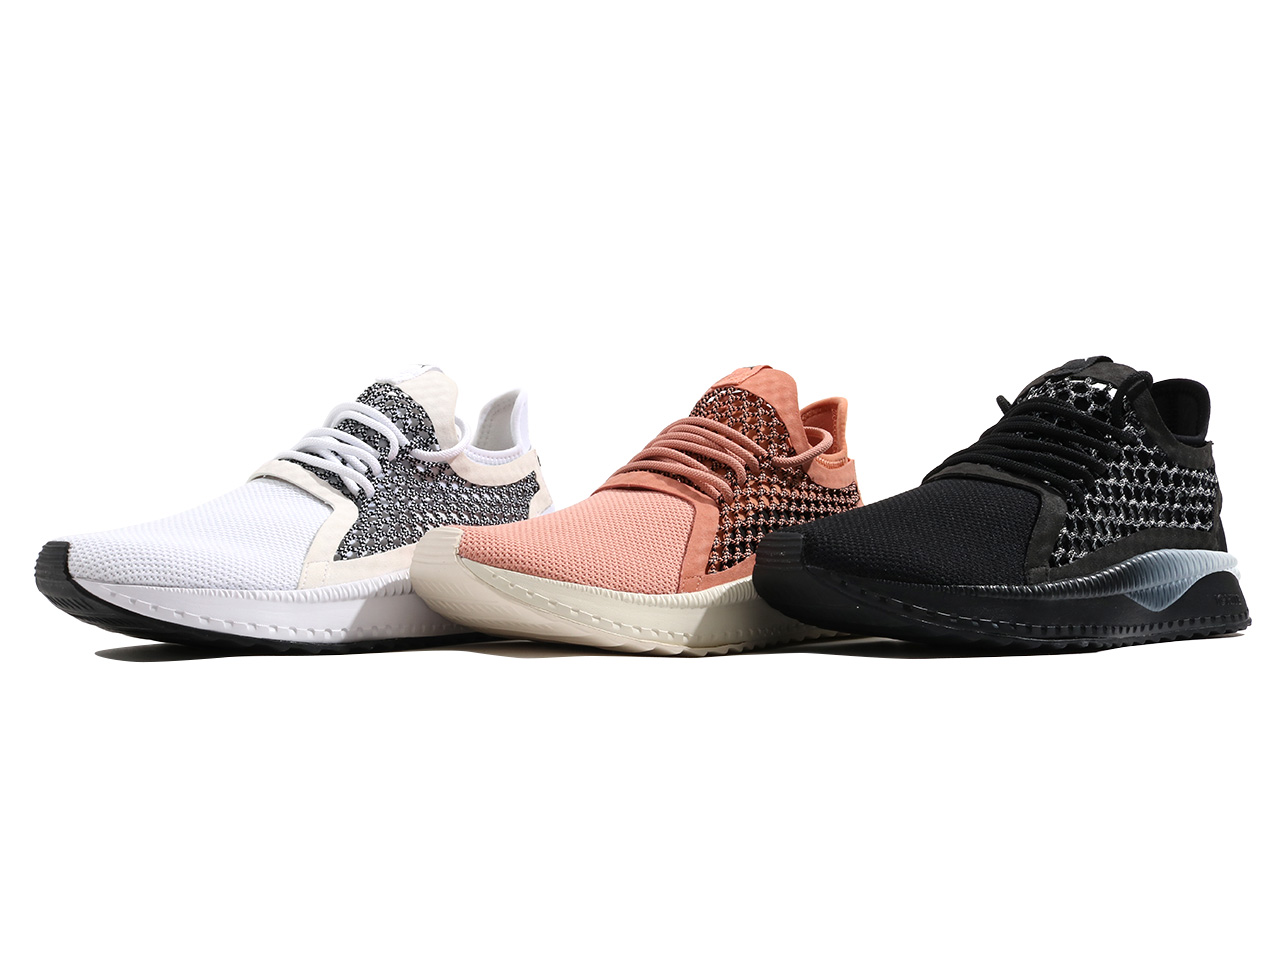 puma_tsugi_net_fit_v2_365398_01_02_03